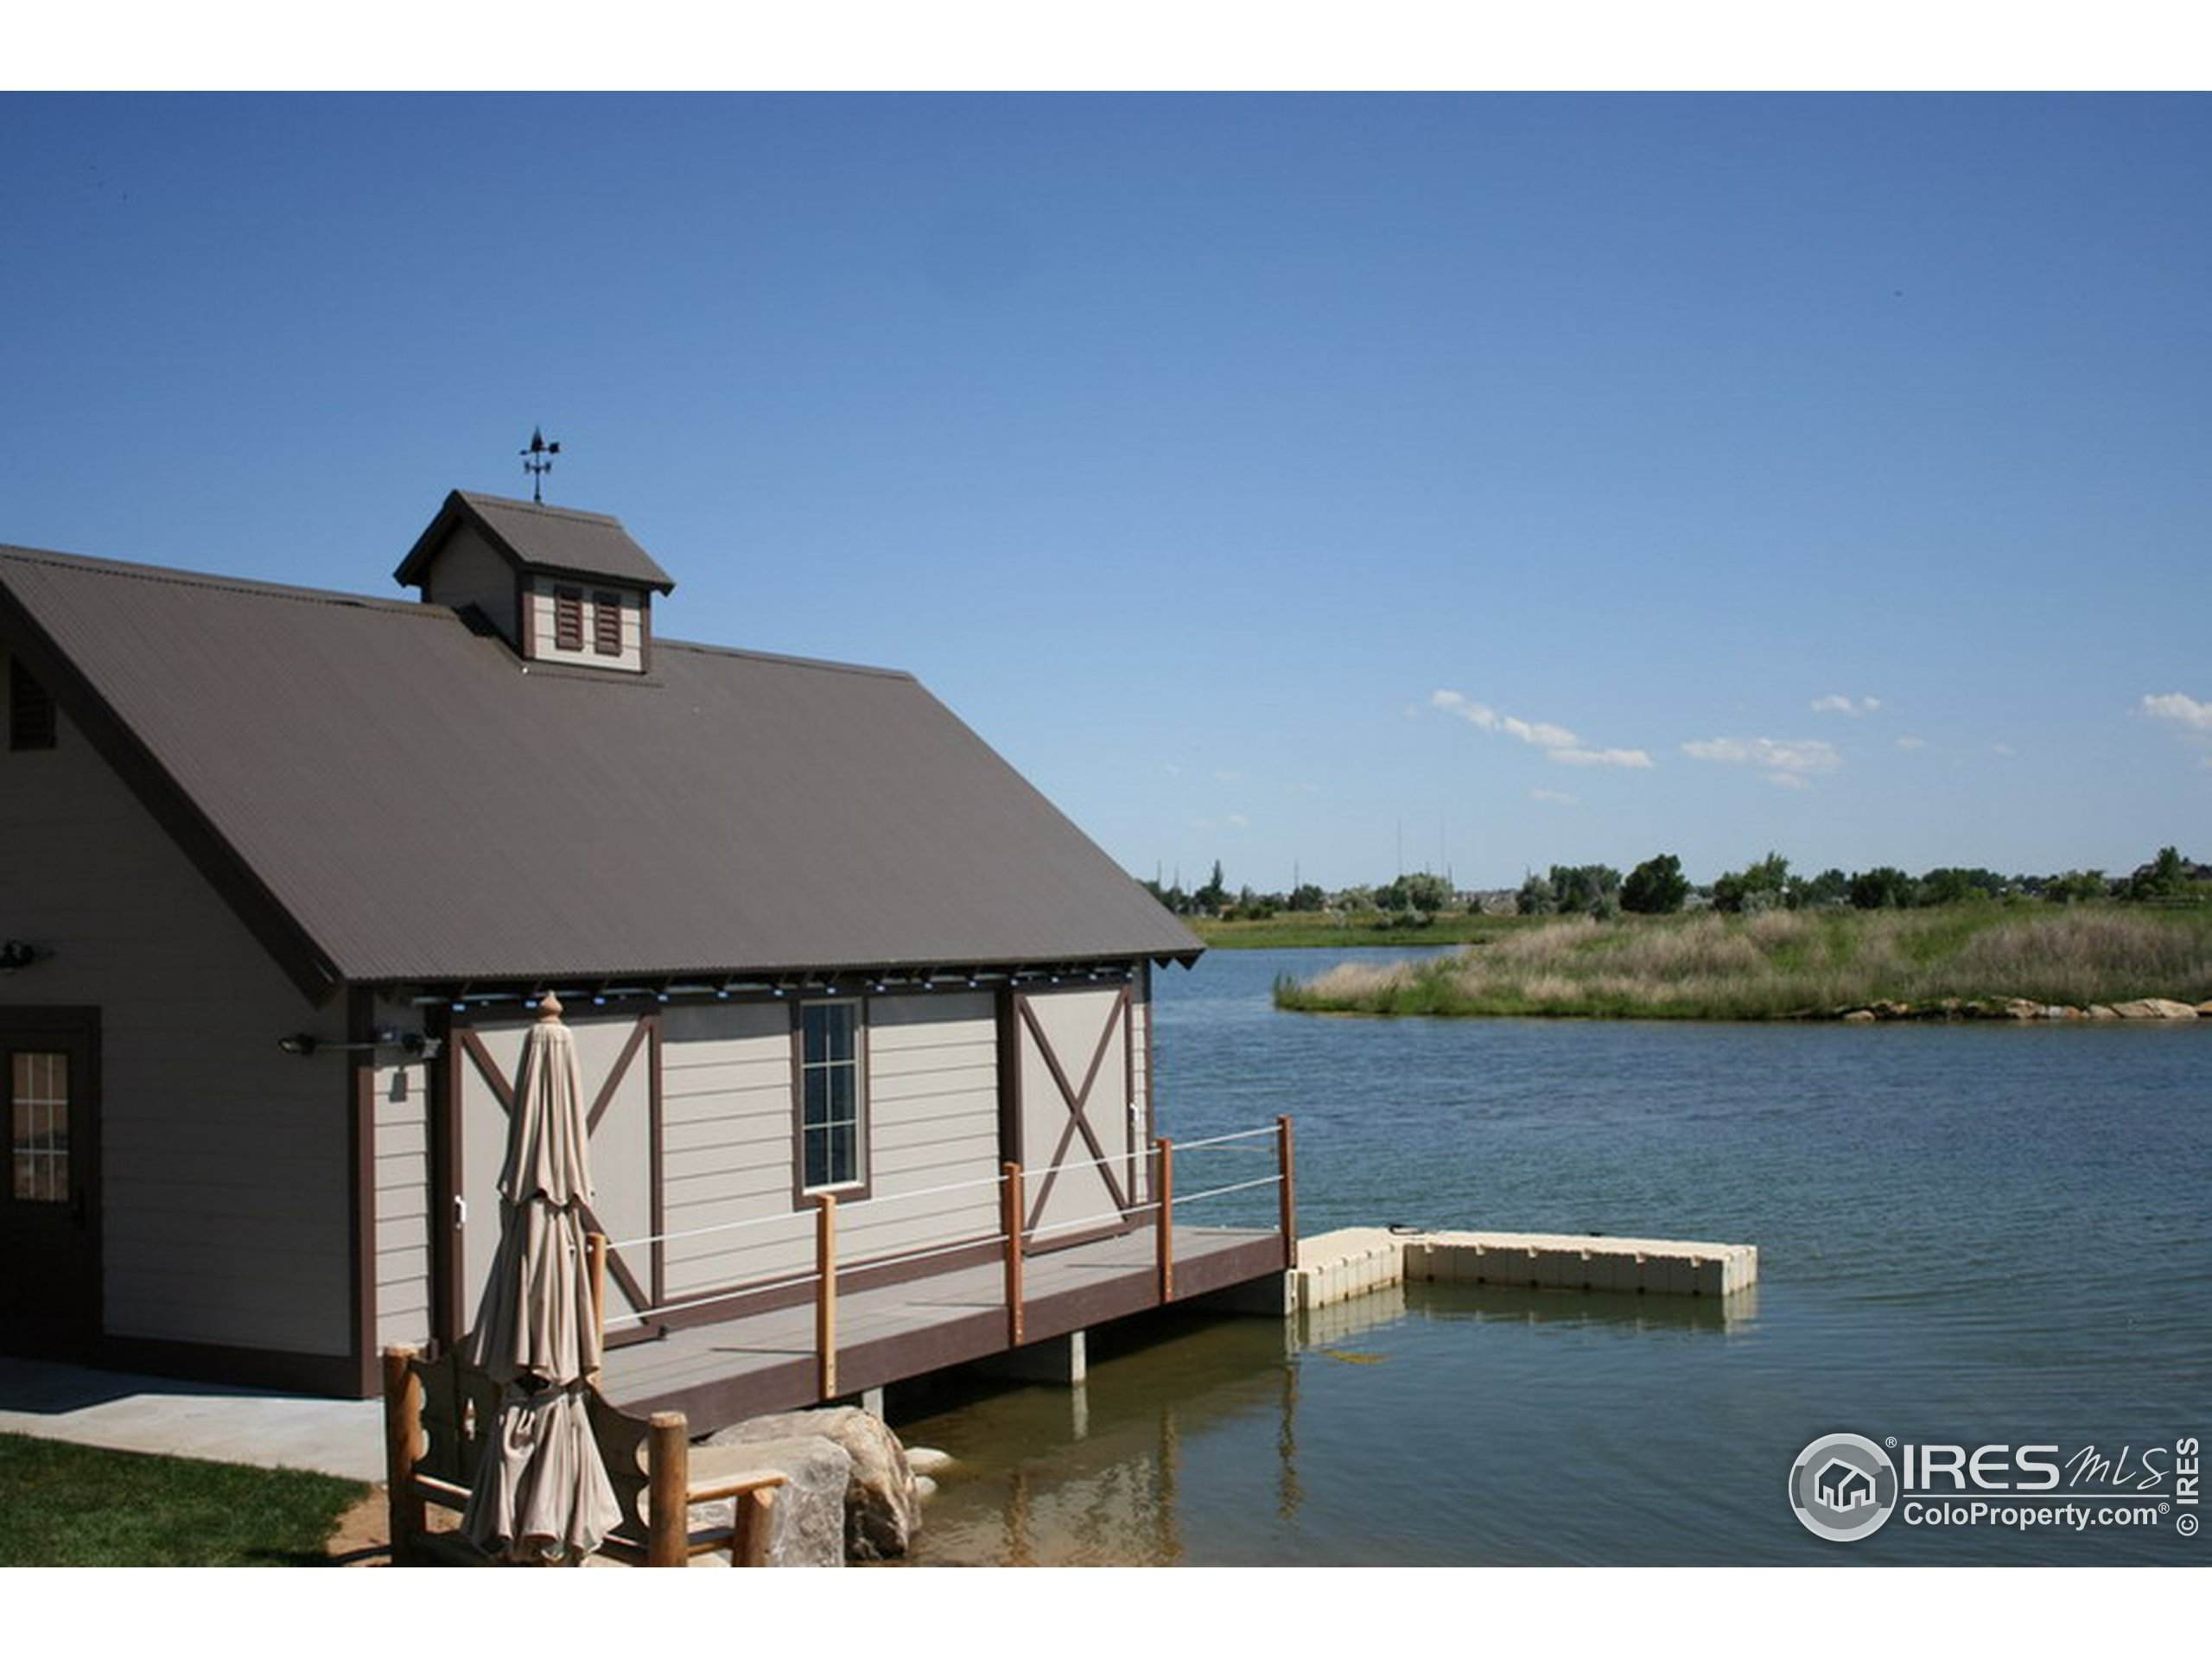 1826 Hydrangea Dr, Windsor, CO 80550 (MLS #938869) :: Stephanie Kolesar